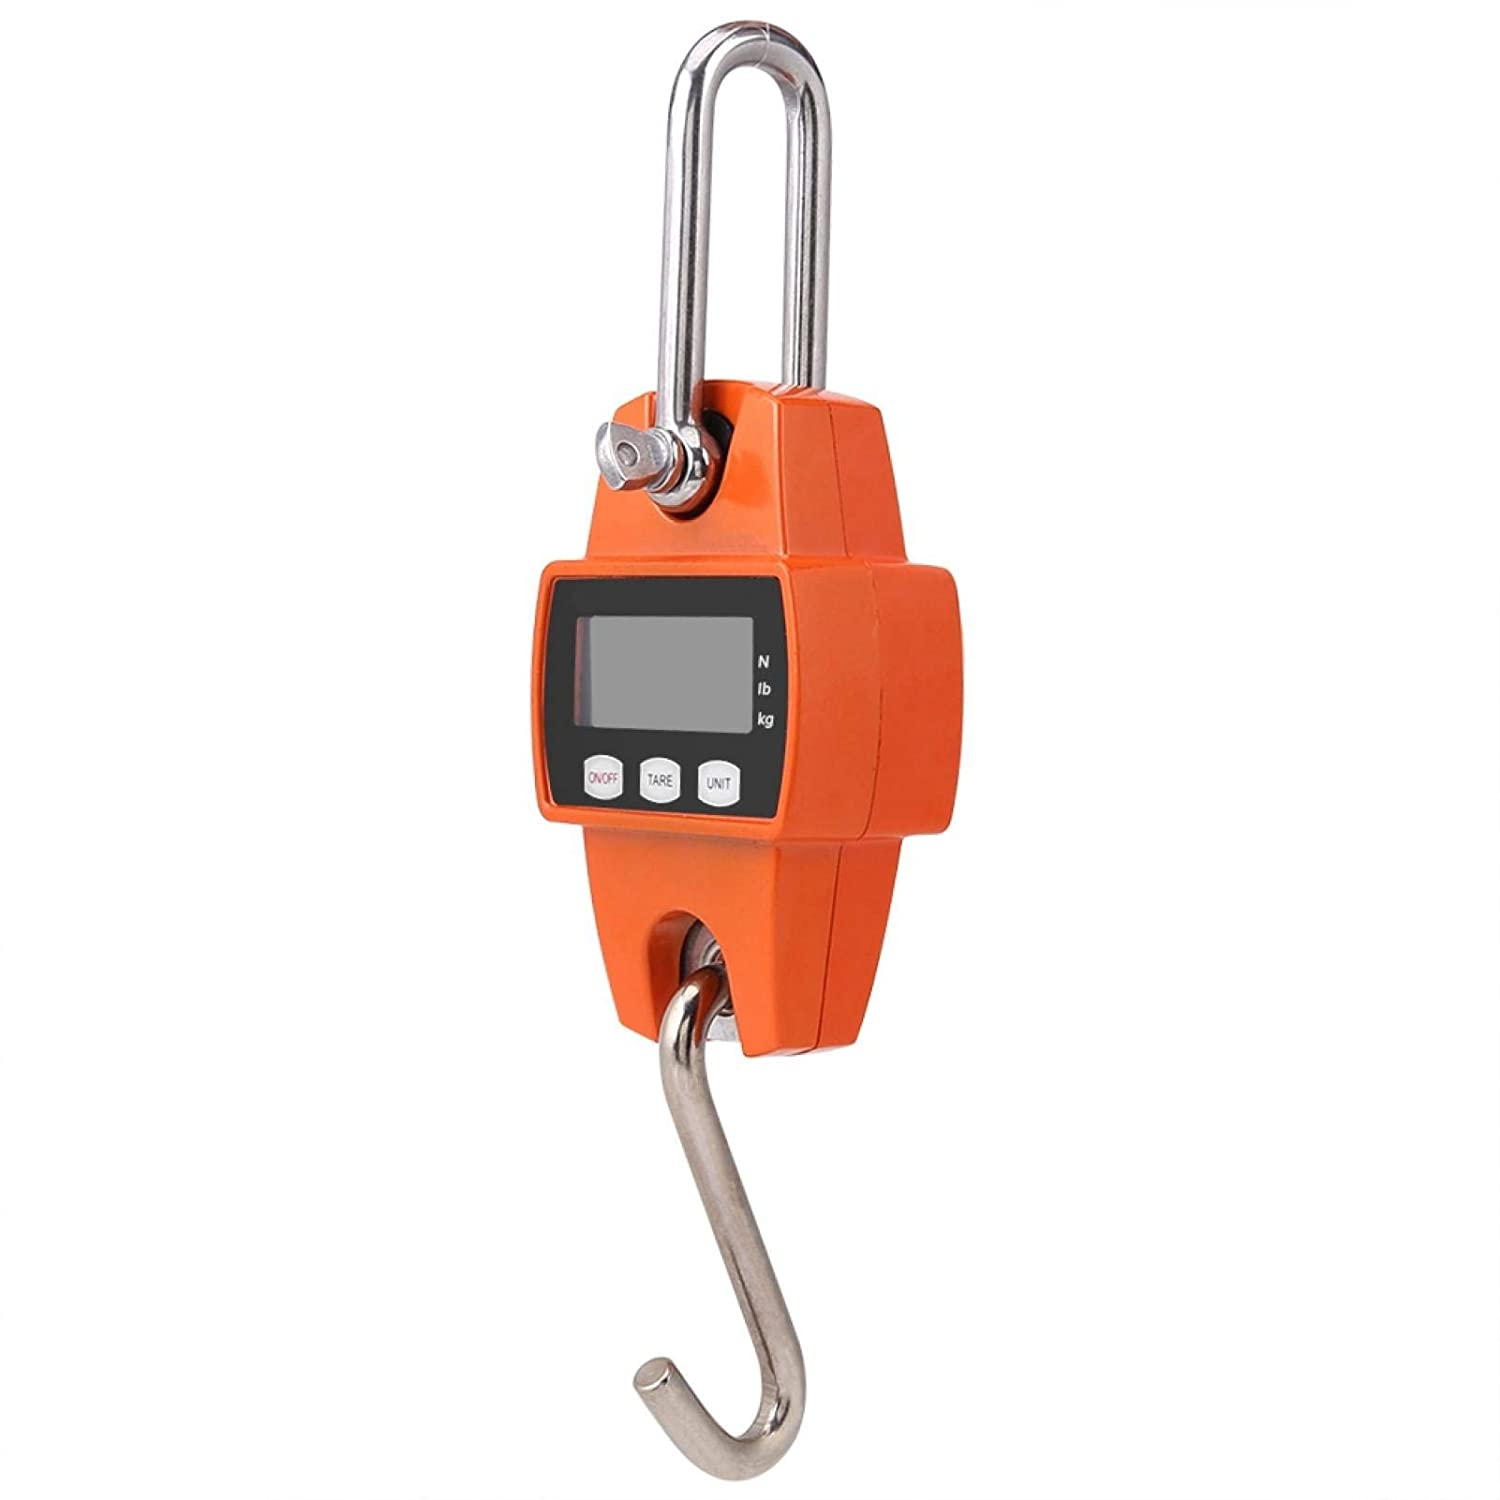 Hanging Scale Portable Hook Scale Digital Weight Scale Electronic 3 Unit LCD Display Weight Scale Mini 0.05 Division 300kg Capacity for House Use